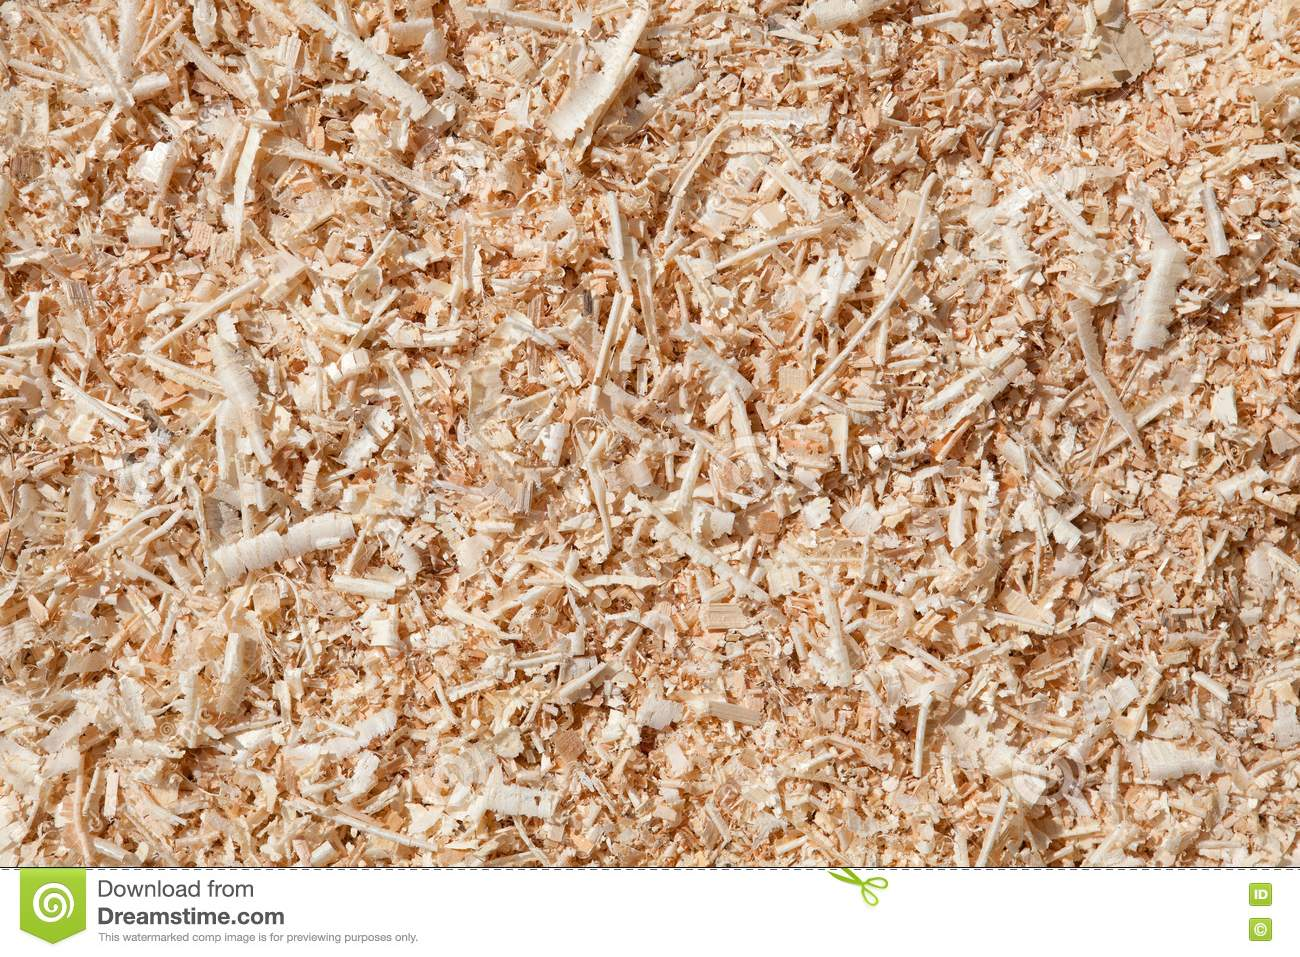 How Different Are Wood Shavings And Sawdust ~ Sawdust royalty free stock images image